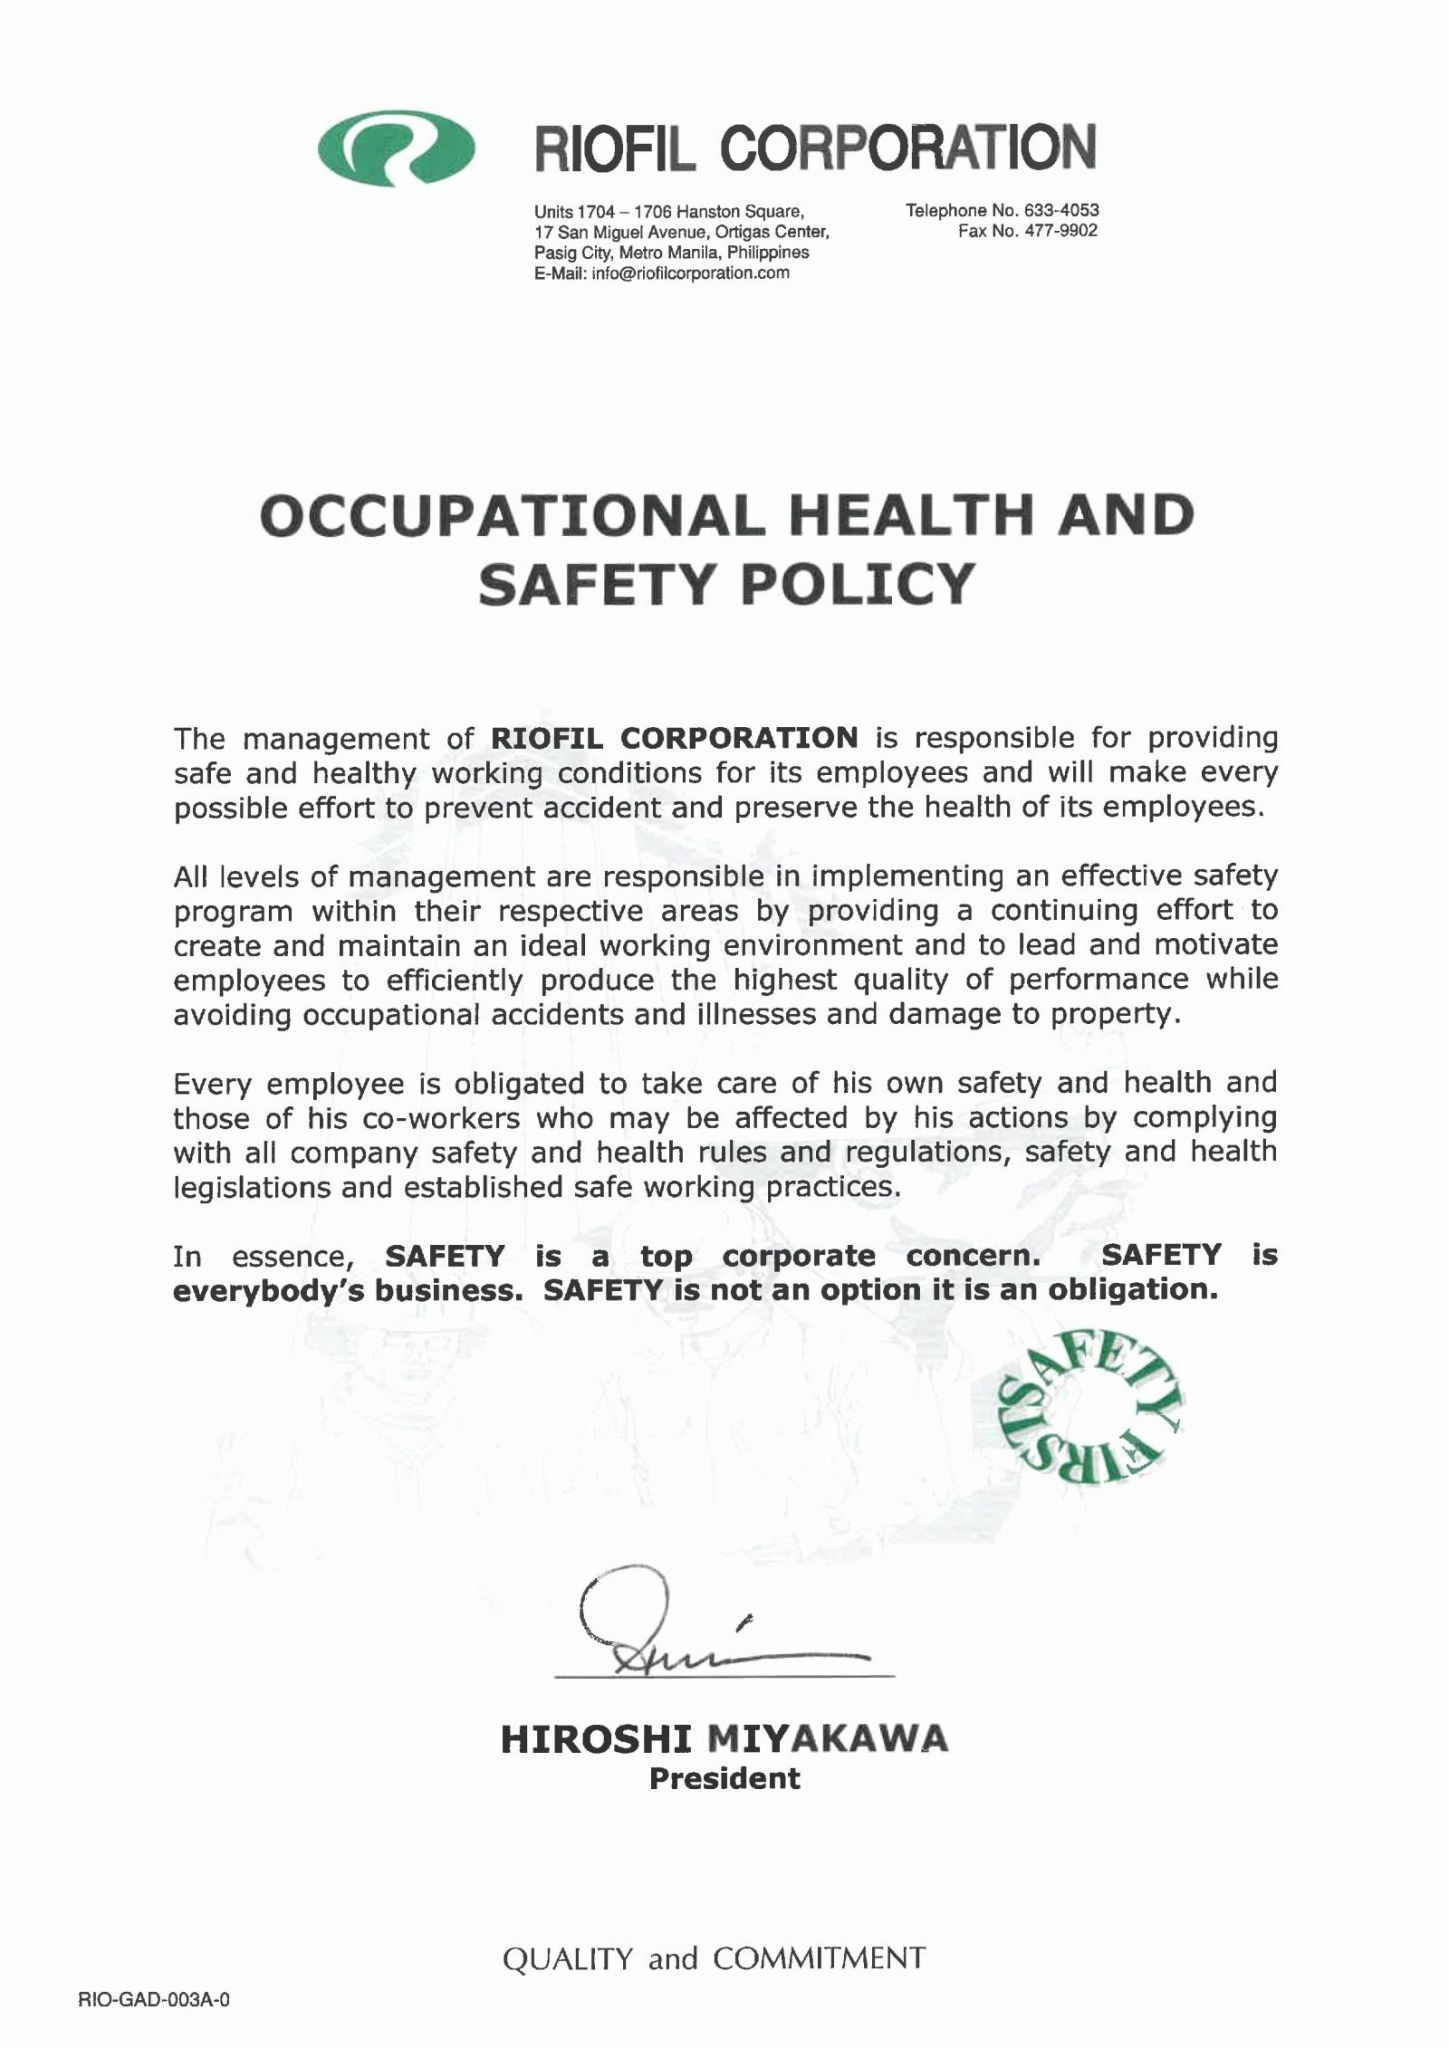 Safety Statement Sample | Mission statement examples ...